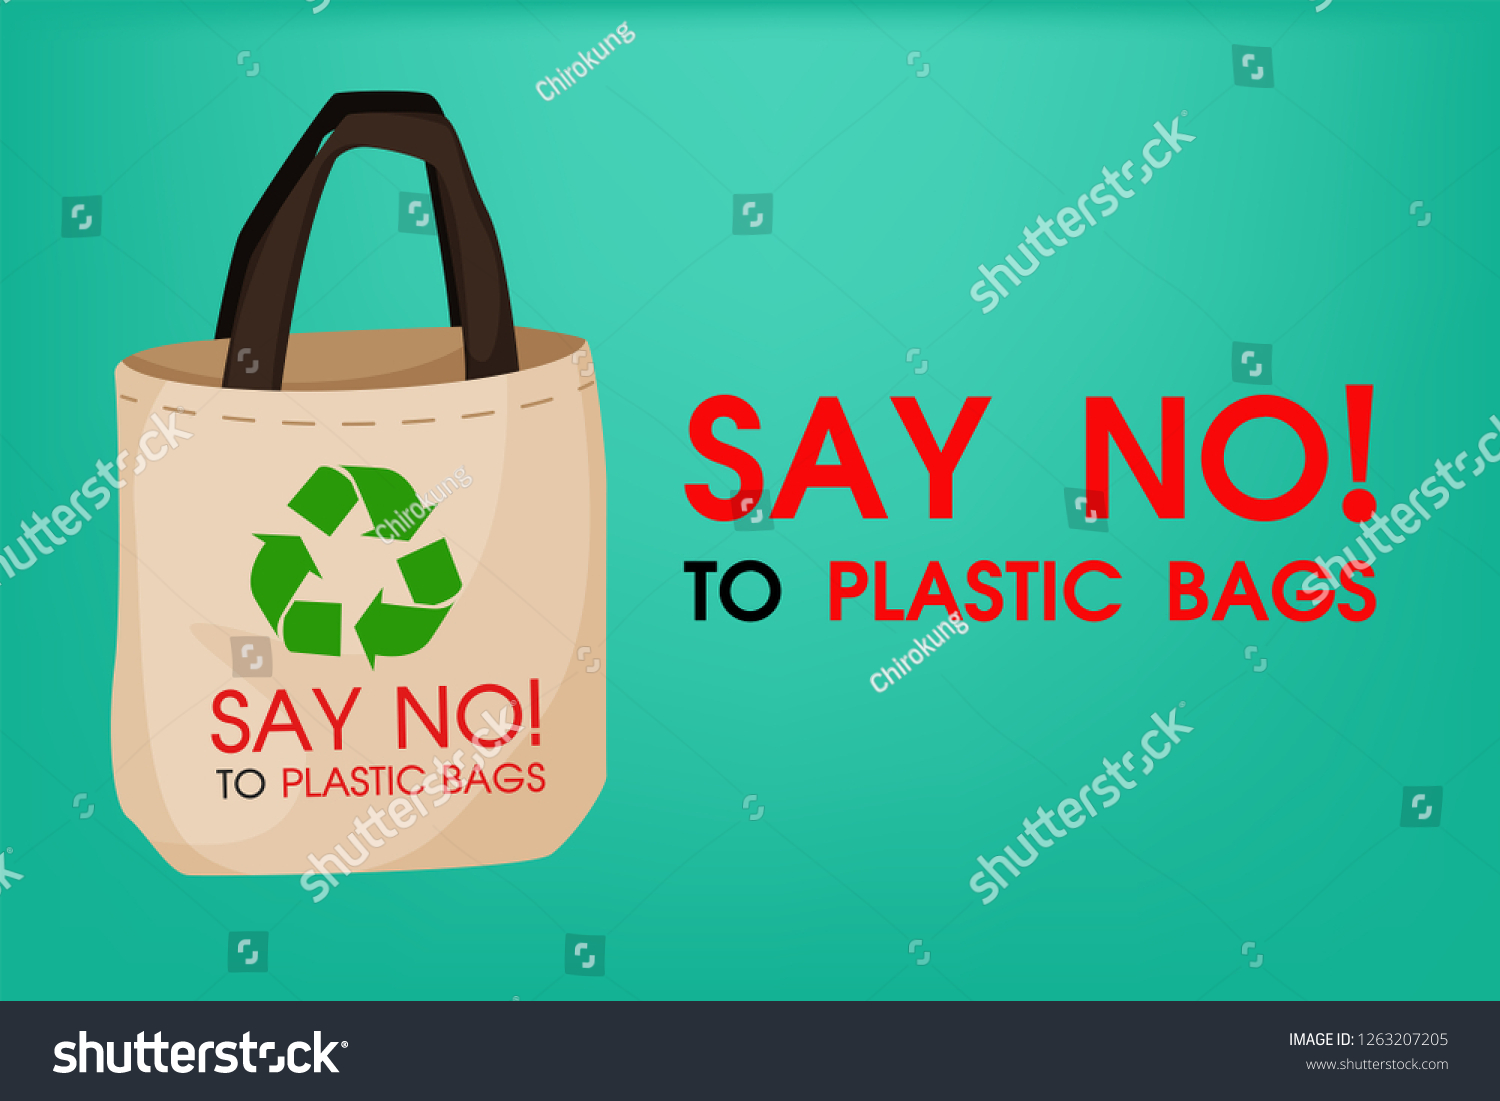 How To Reduse Pollution Ideas Reduce Pollution Say No Plastic Stock Vector Royalty Free